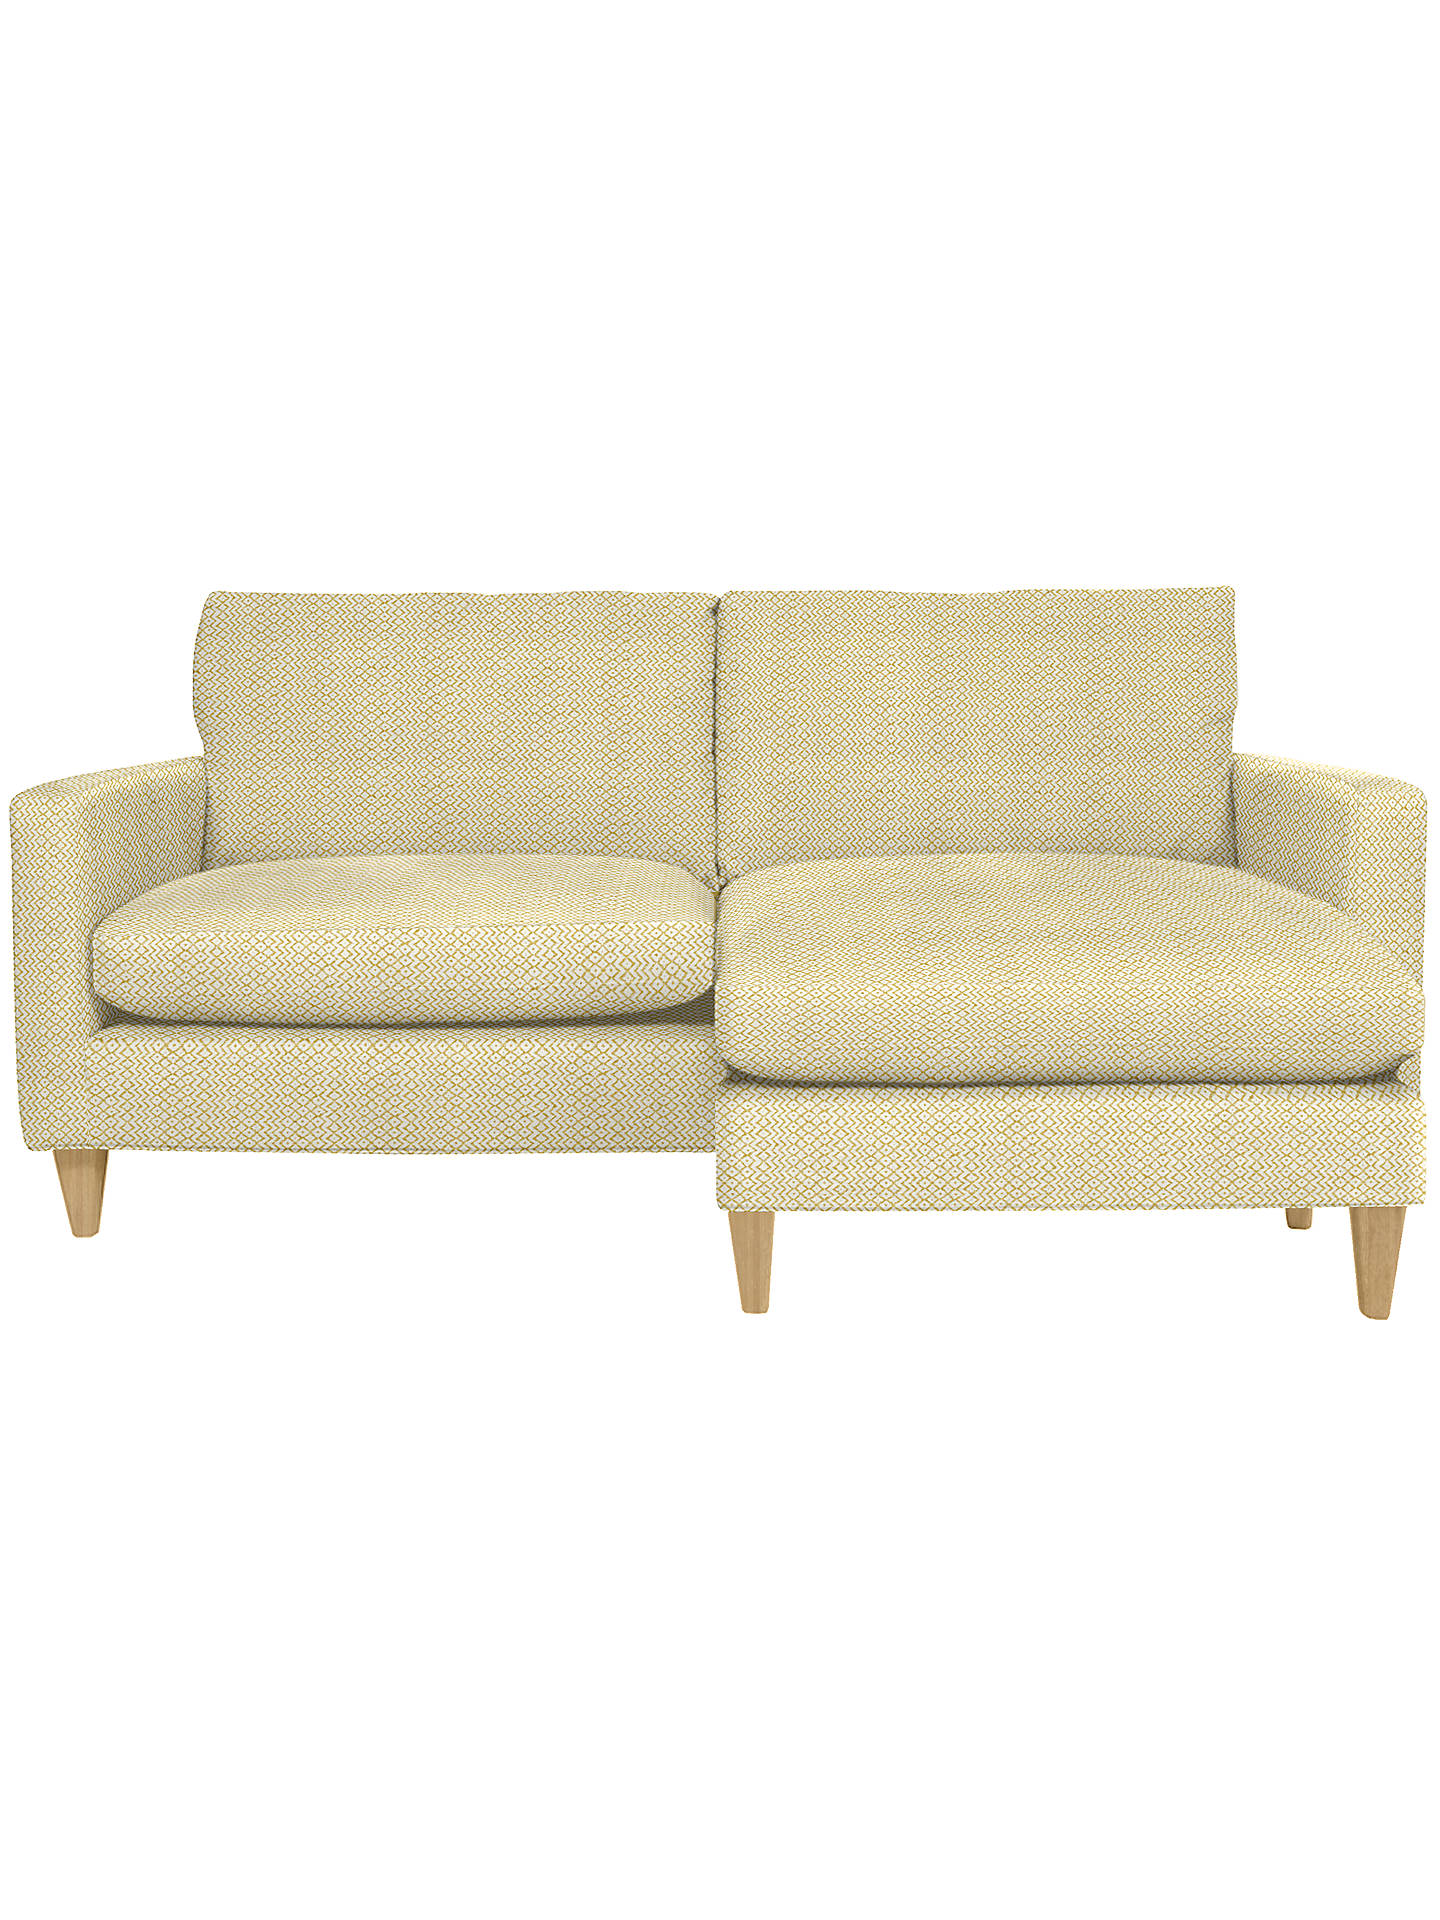 John Lewis Bailey Rhf Loose Cover Chaise End Sofa Price Band F At John Lewis Partners